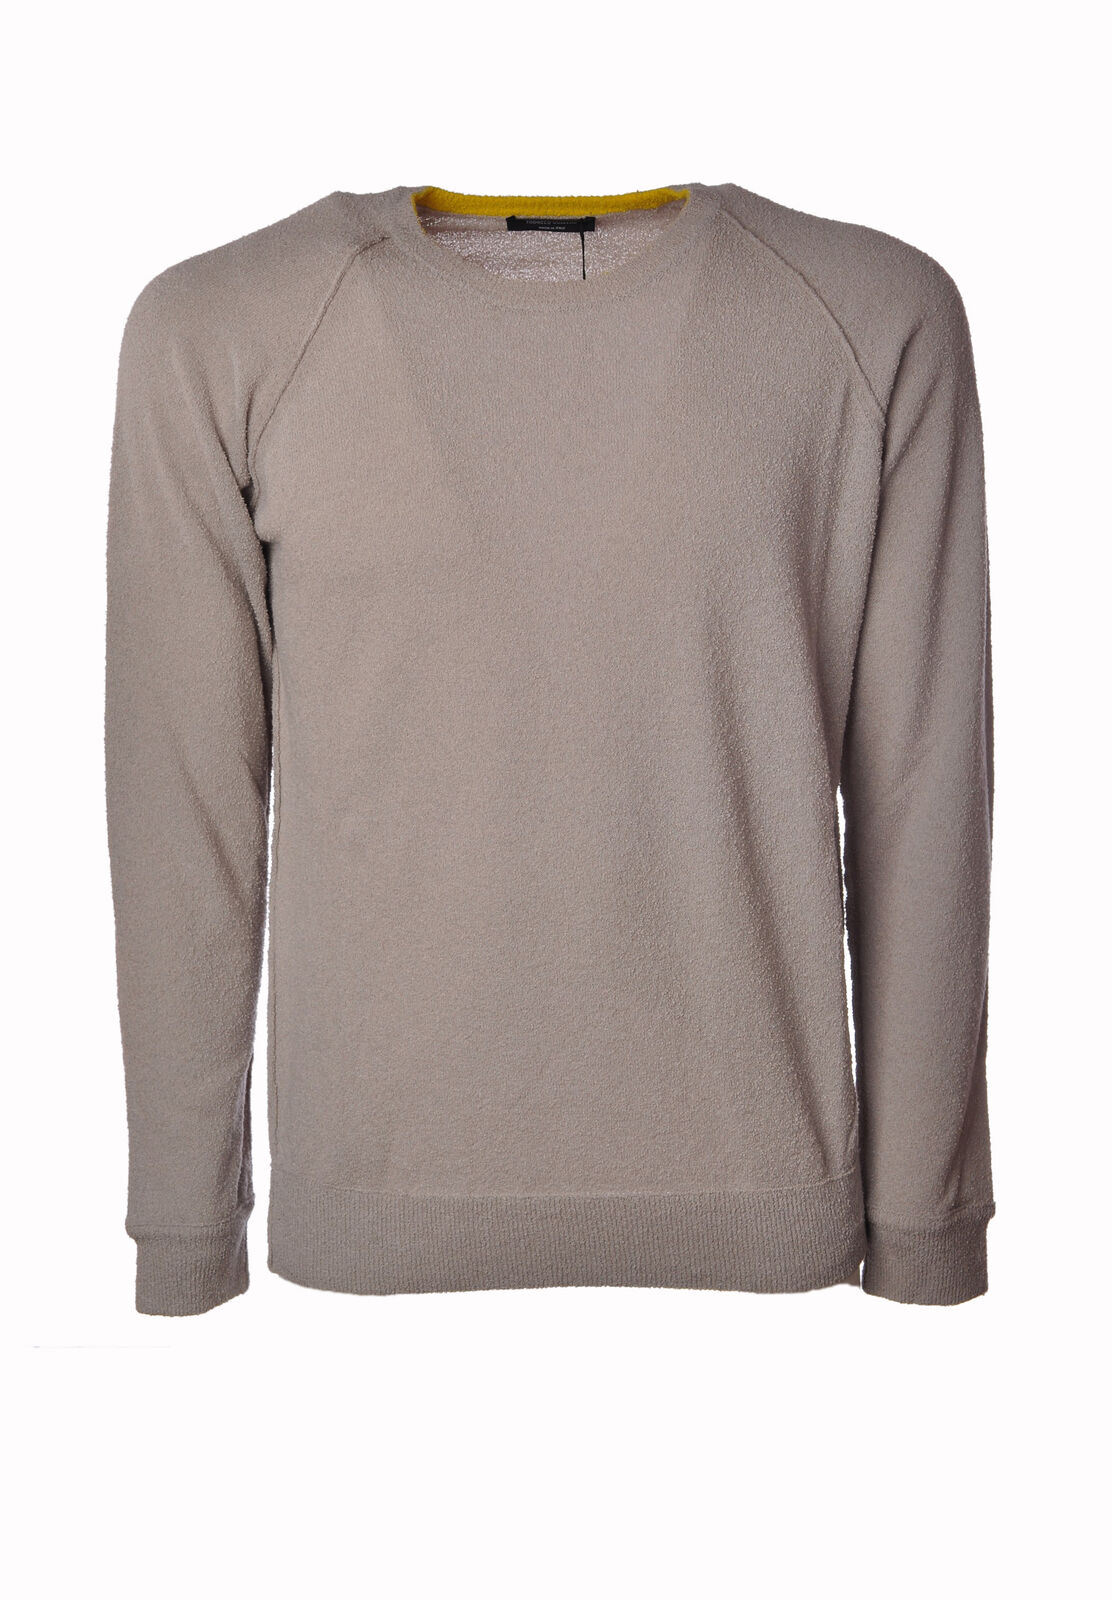 Roberto Collina  -  Sweaters - Male - Beige - 3212615A183628